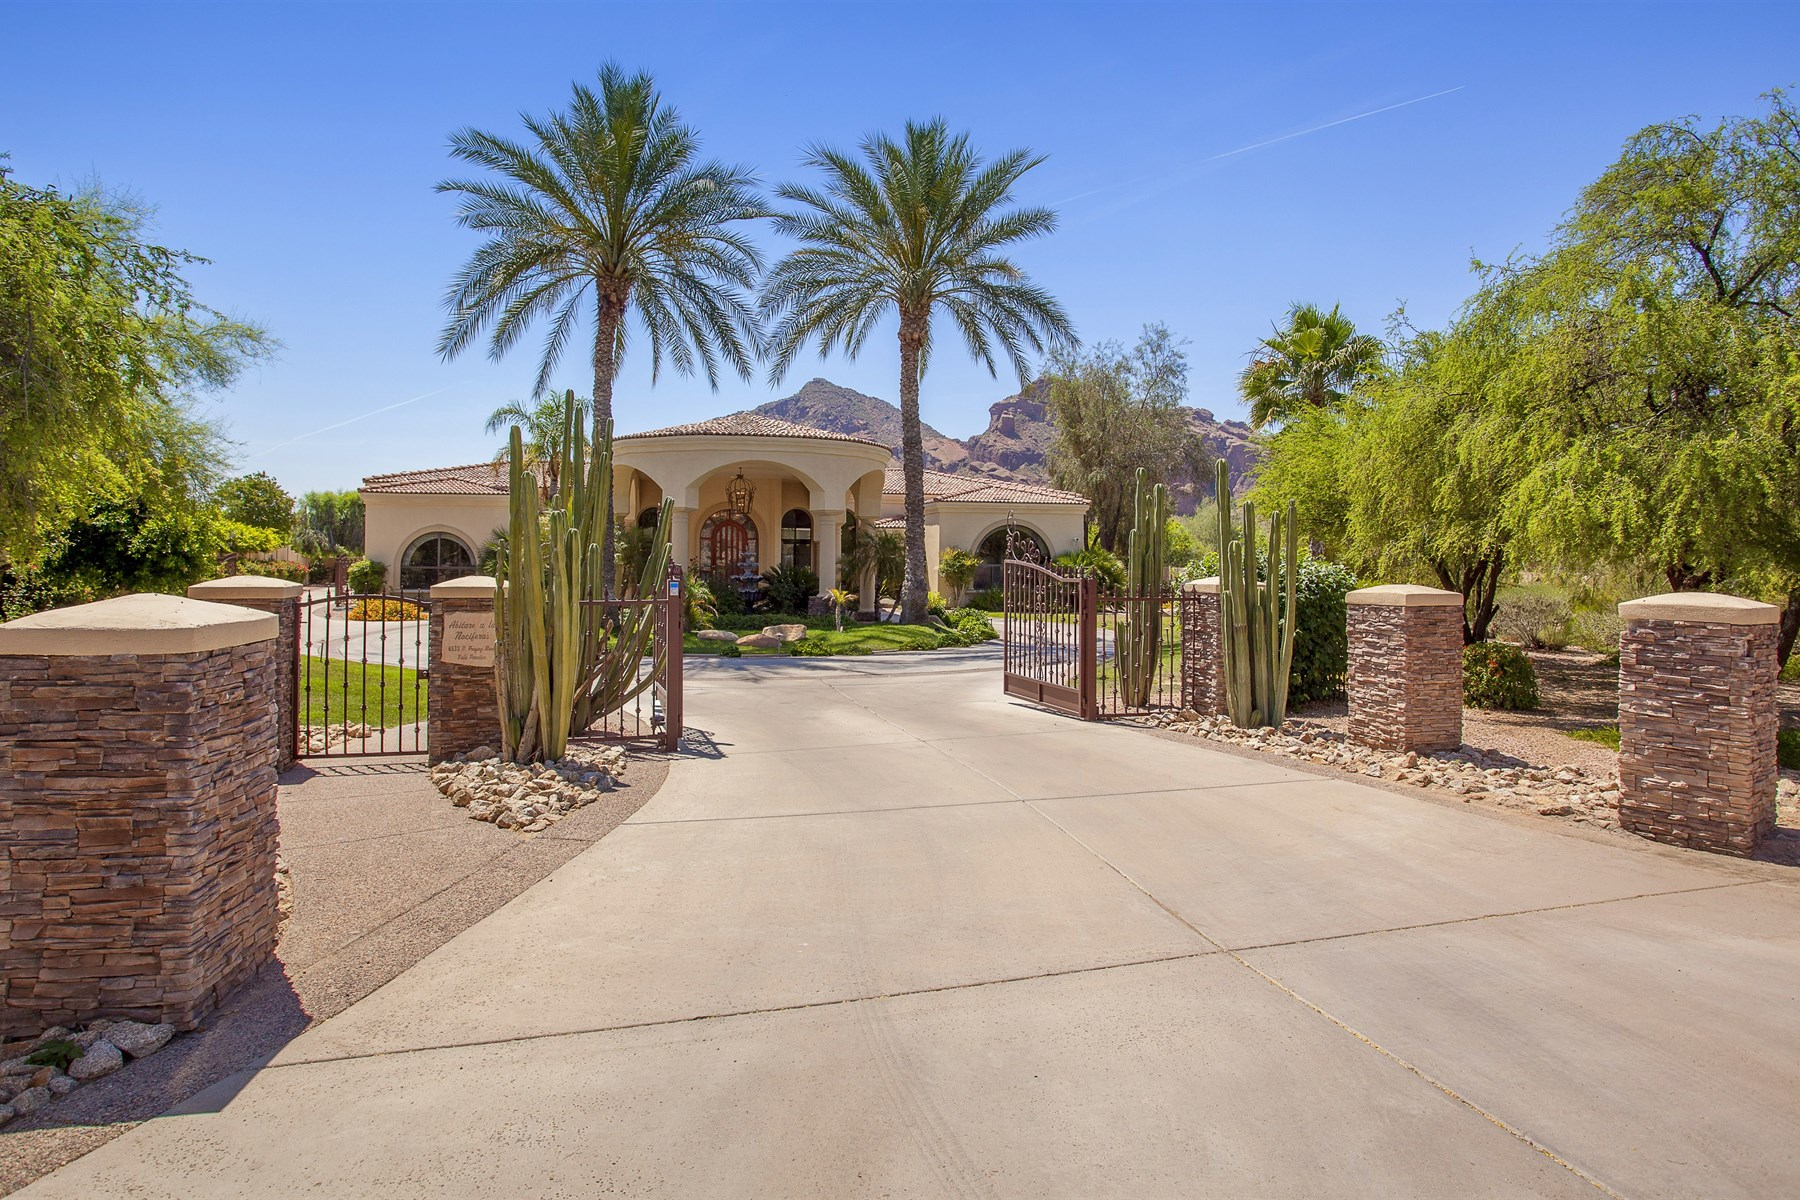 Einfamilienhaus für Verkauf beim Stunning Views of Camelback Mountain from this fabulous 1.16 Acre Gated Estate. 6533 N PRAYING MONK RD Paradise Valley, Arizona 85253 Vereinigte Staaten